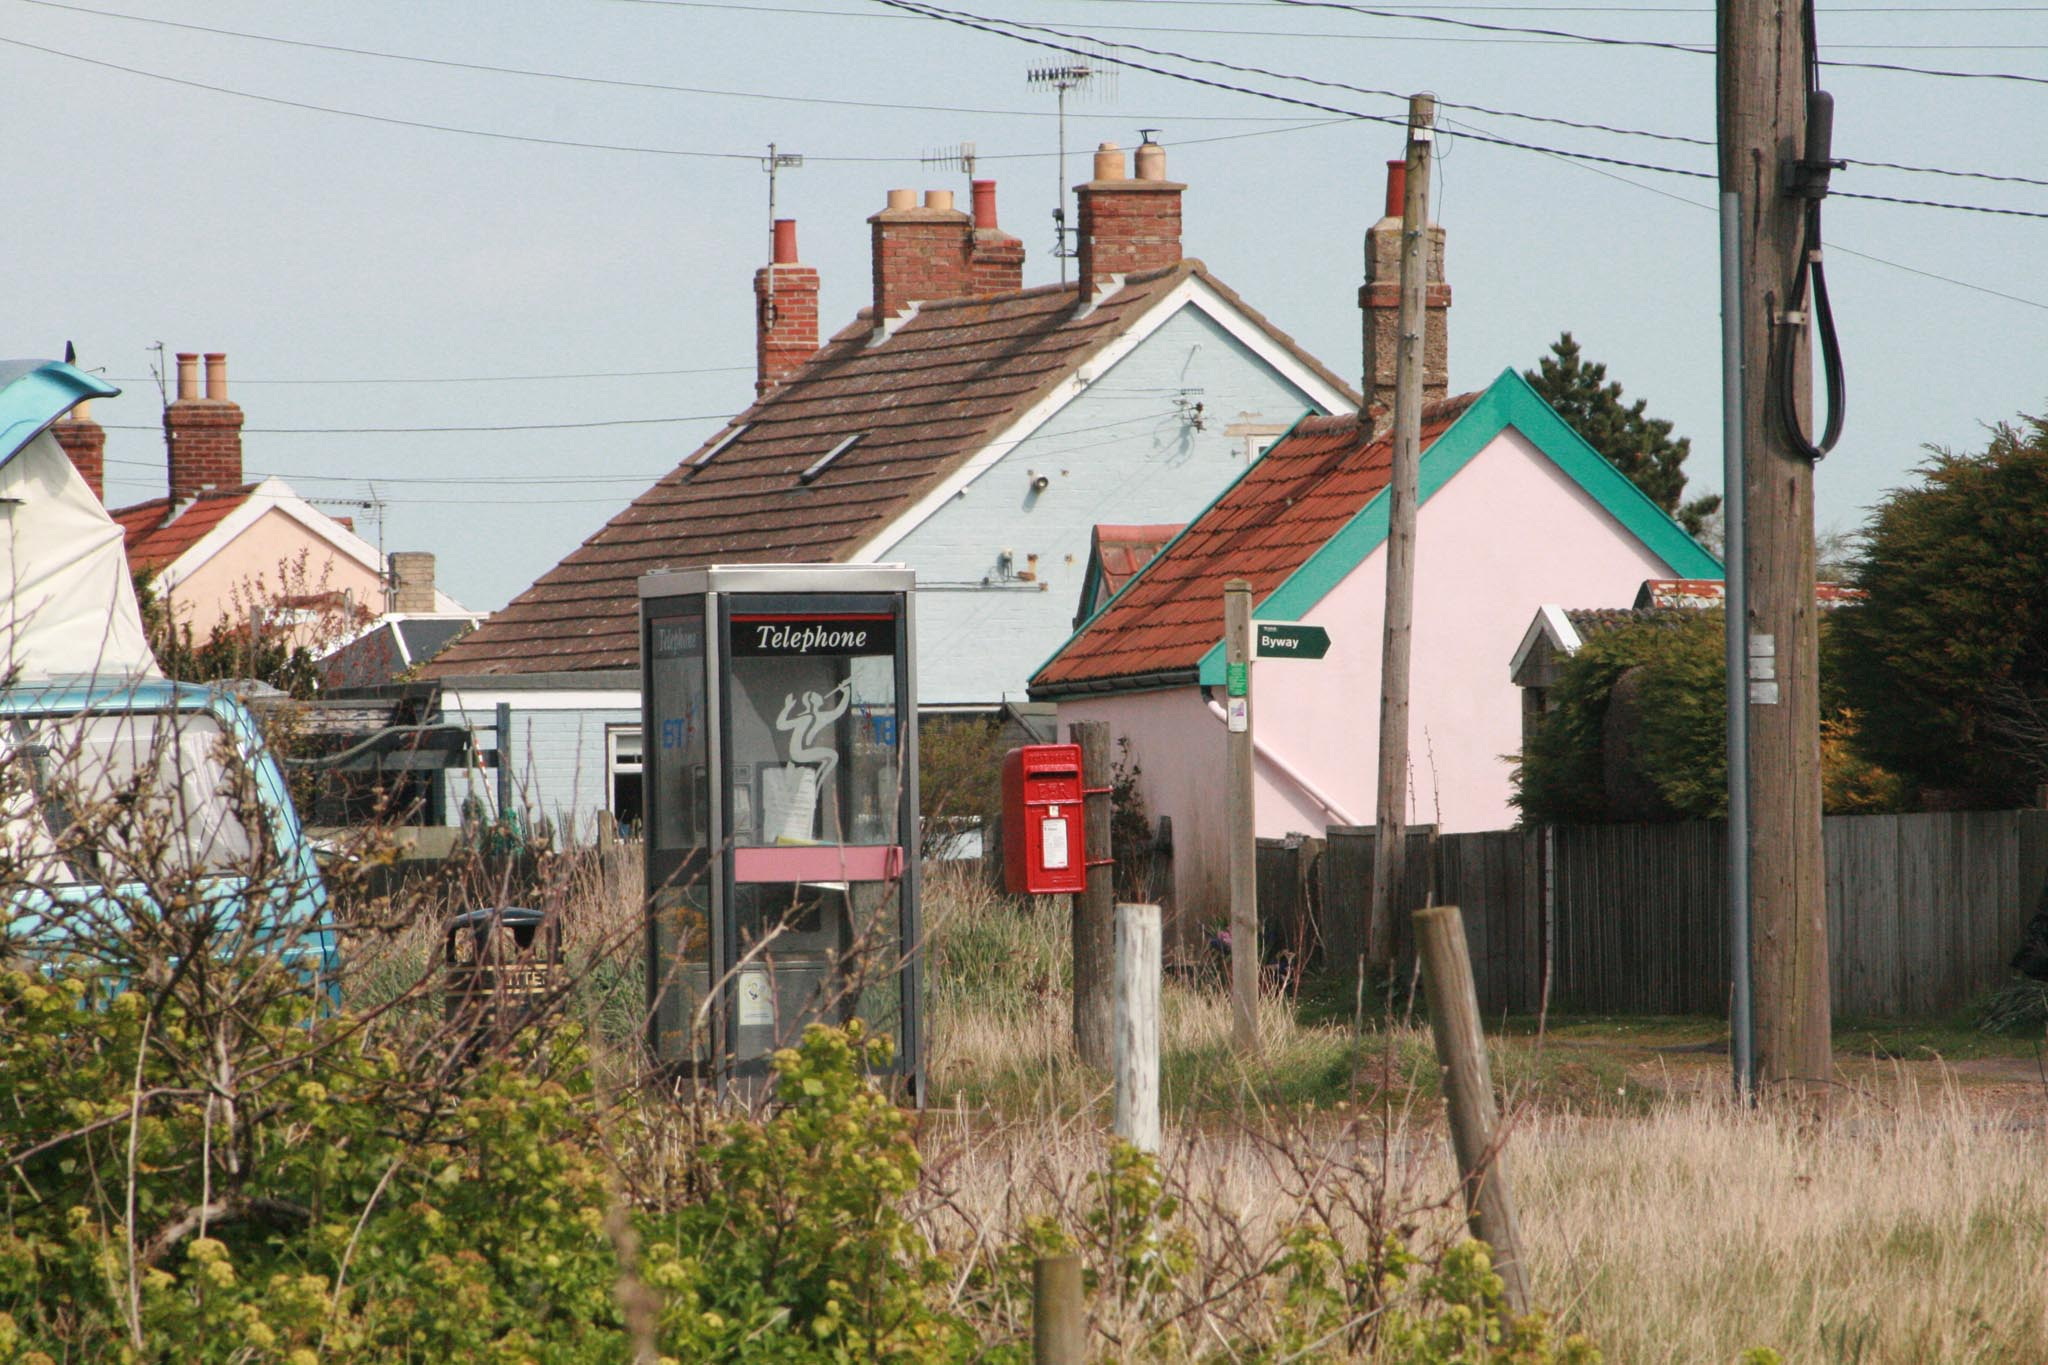 E2R lamp box, 1980s, Suffolk. Robert Cole